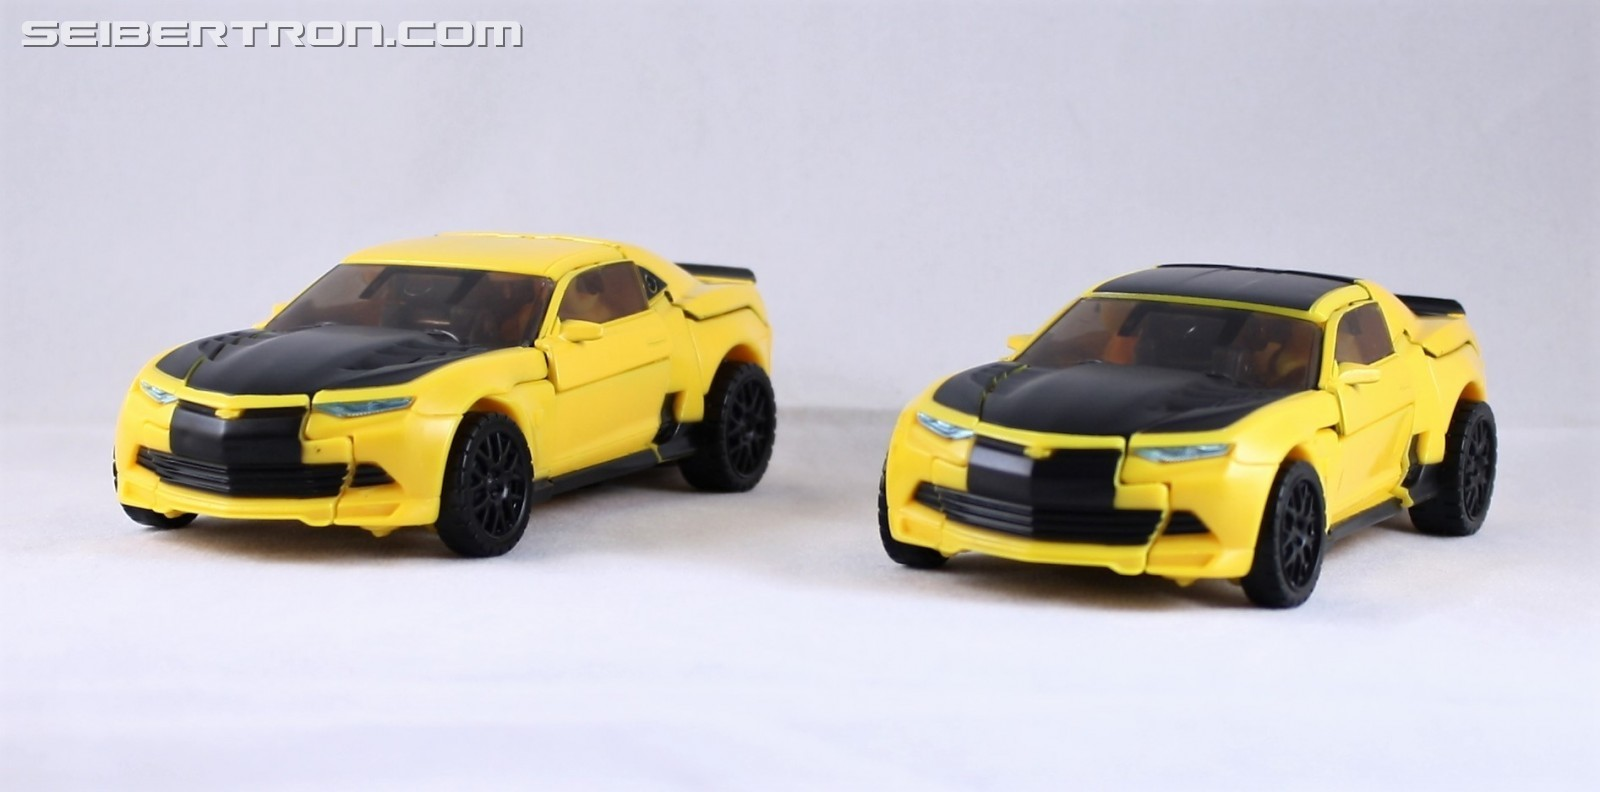 Transformers News: Bumblebee Variant Found in Transformers: The Last Knight Premier Edition